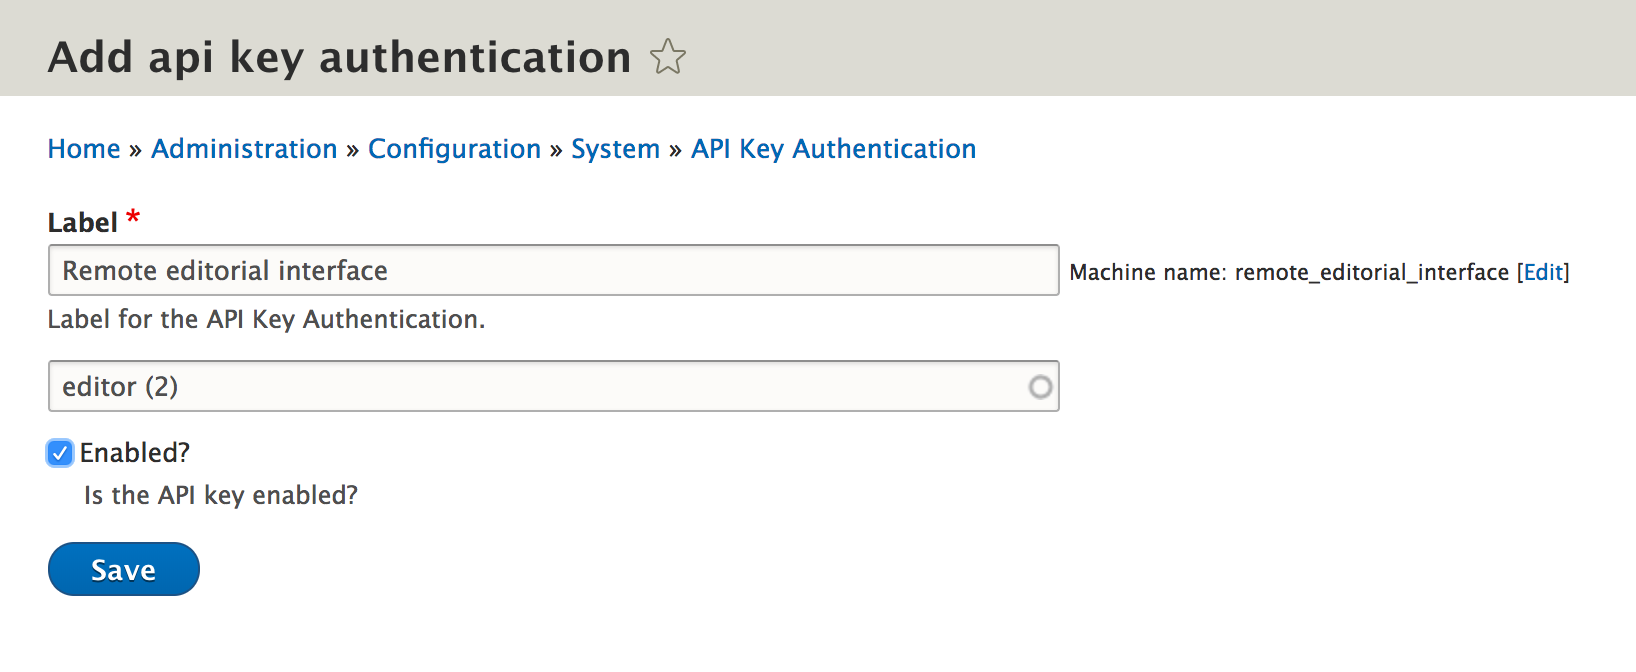 Interface for creating an API Key relation between a user and authentication key & secret